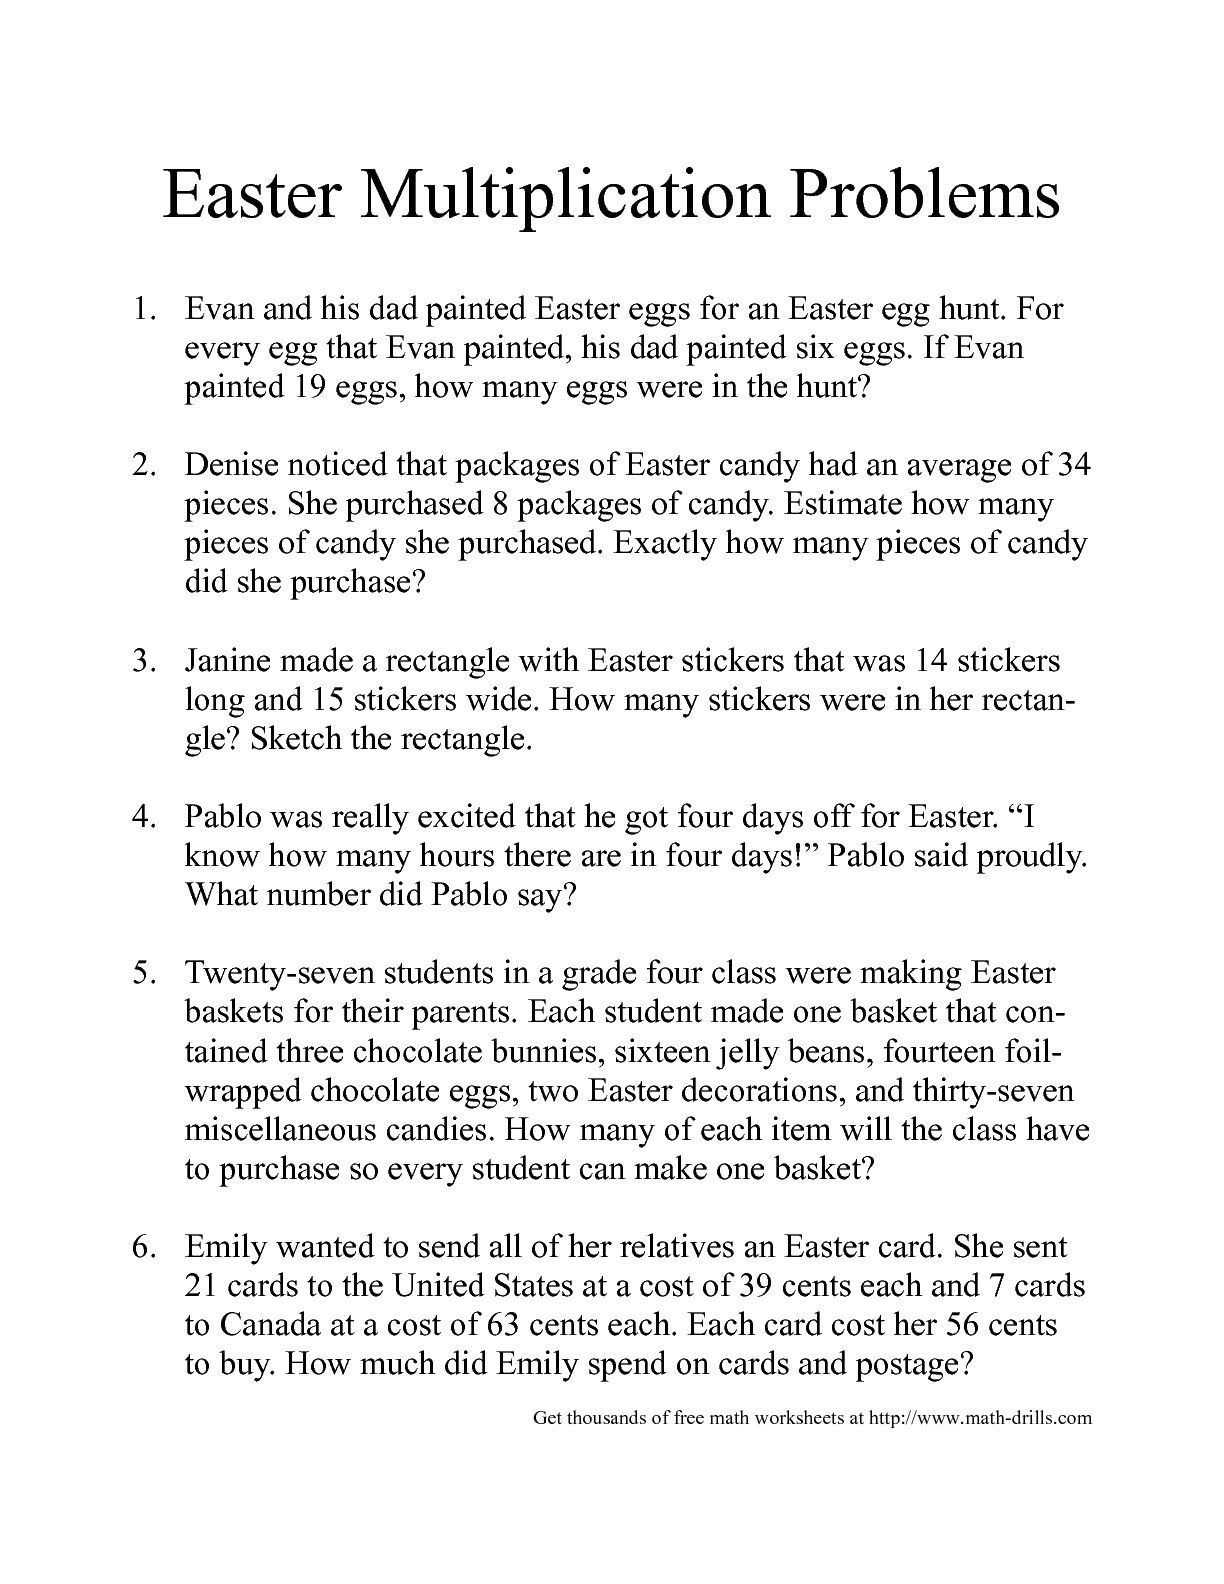 5 Free Math Worksheets Second Grade 2 Counting Money Counting Money Canadian Nickels Dimes Qu Word Problem Worksheets Word Problems Geometry Words